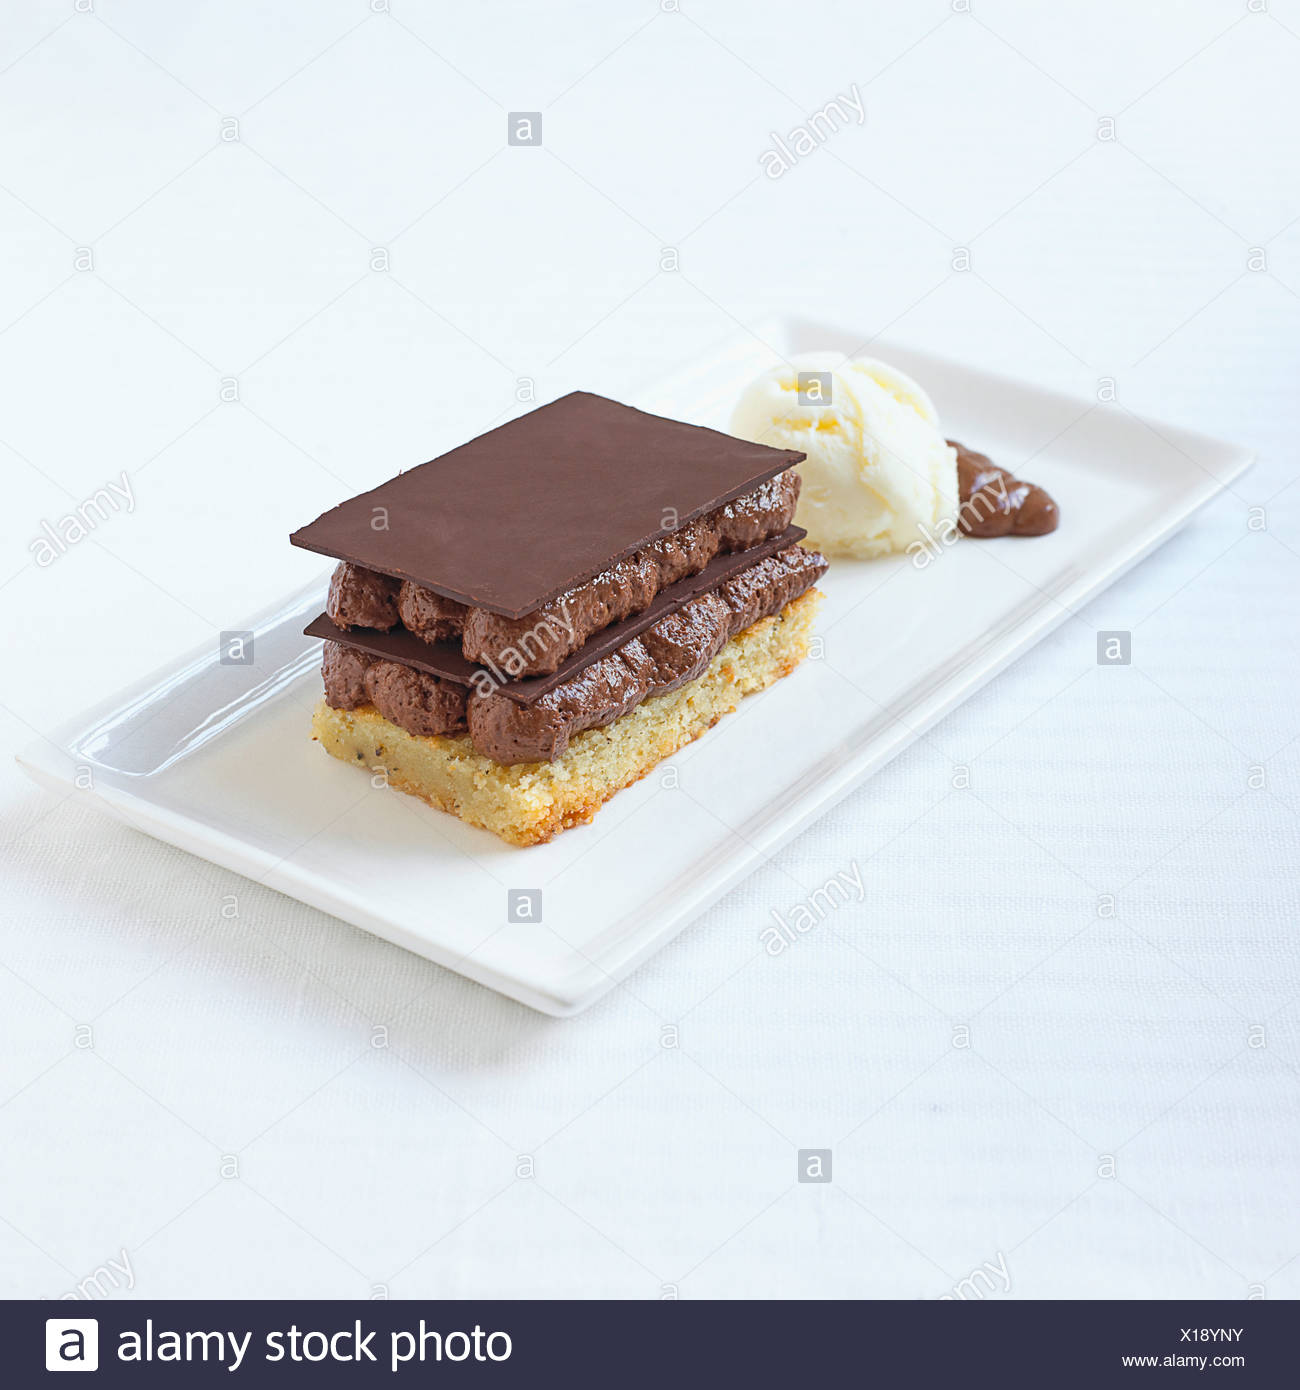 Dark chocolate mousse, green tea financier and ice cream desert on white rectangular plate, close-up - Stock Image